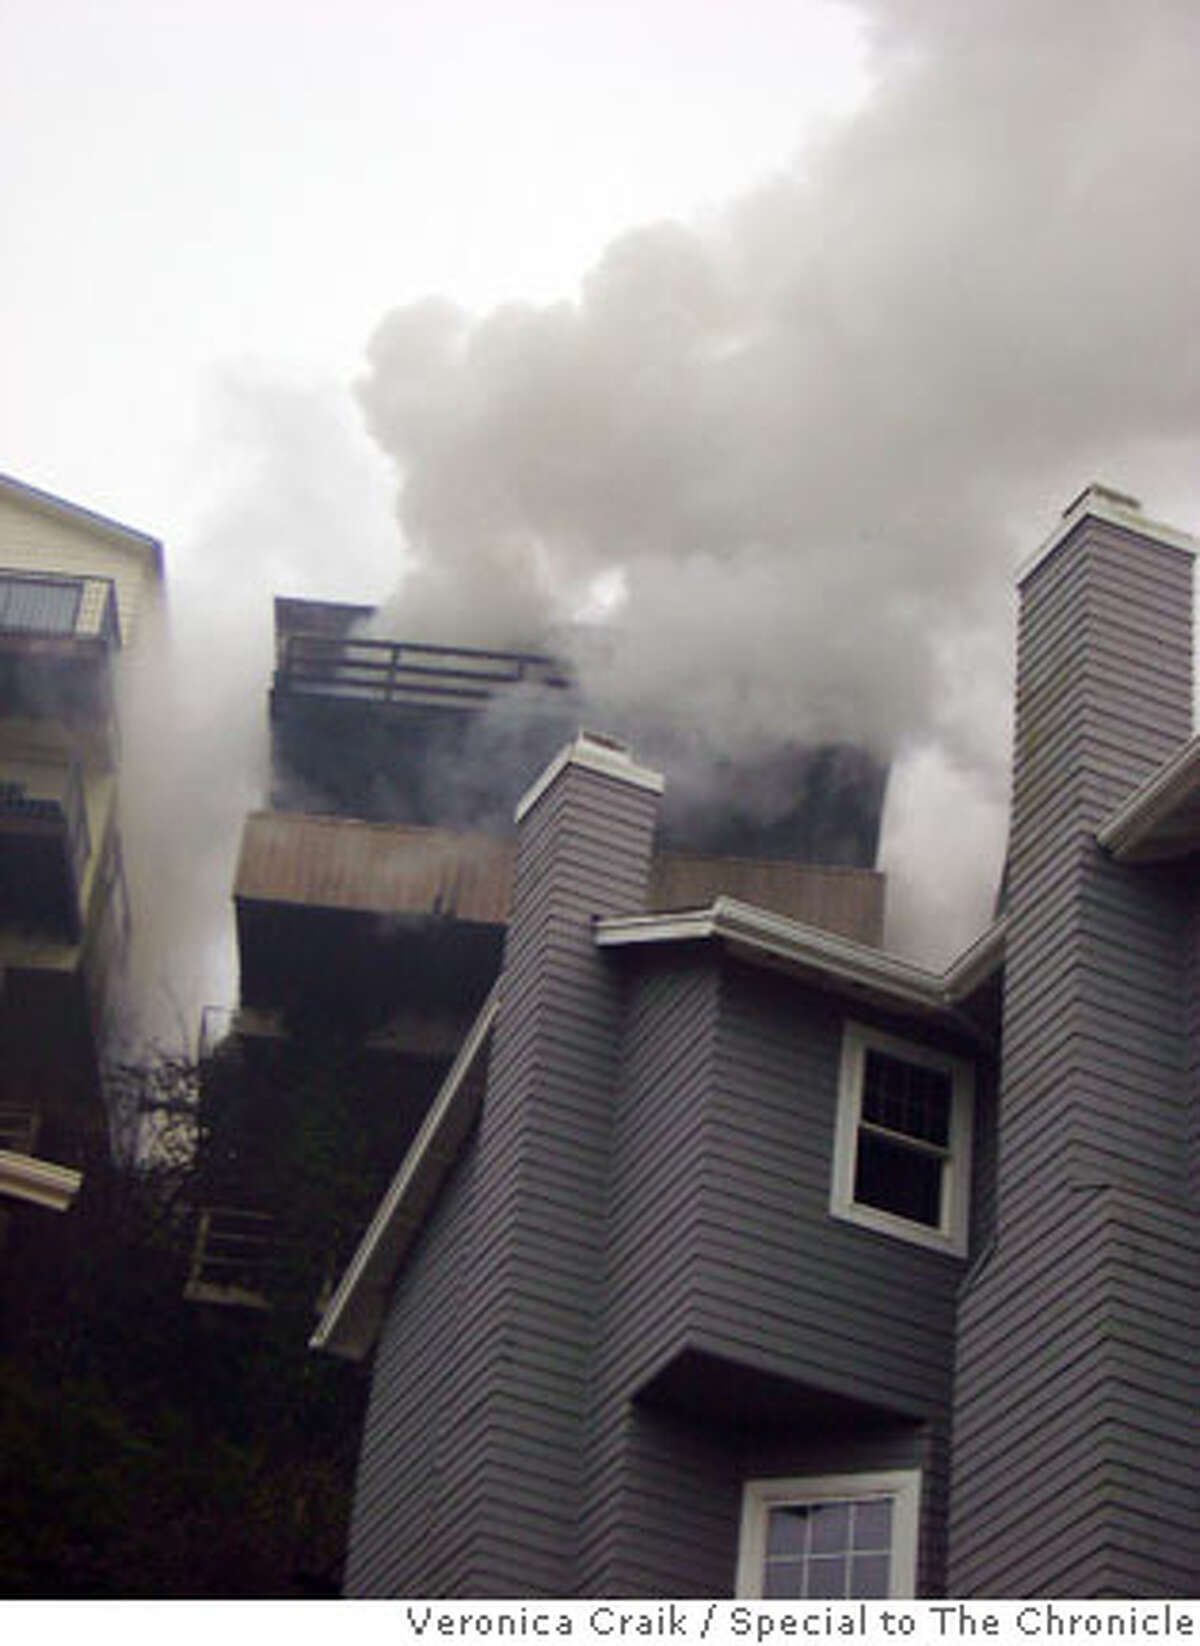 The fire broke out at 171 Devonshire Way in San Francisco. Photo by Veronica Craik, special to The Chronicle